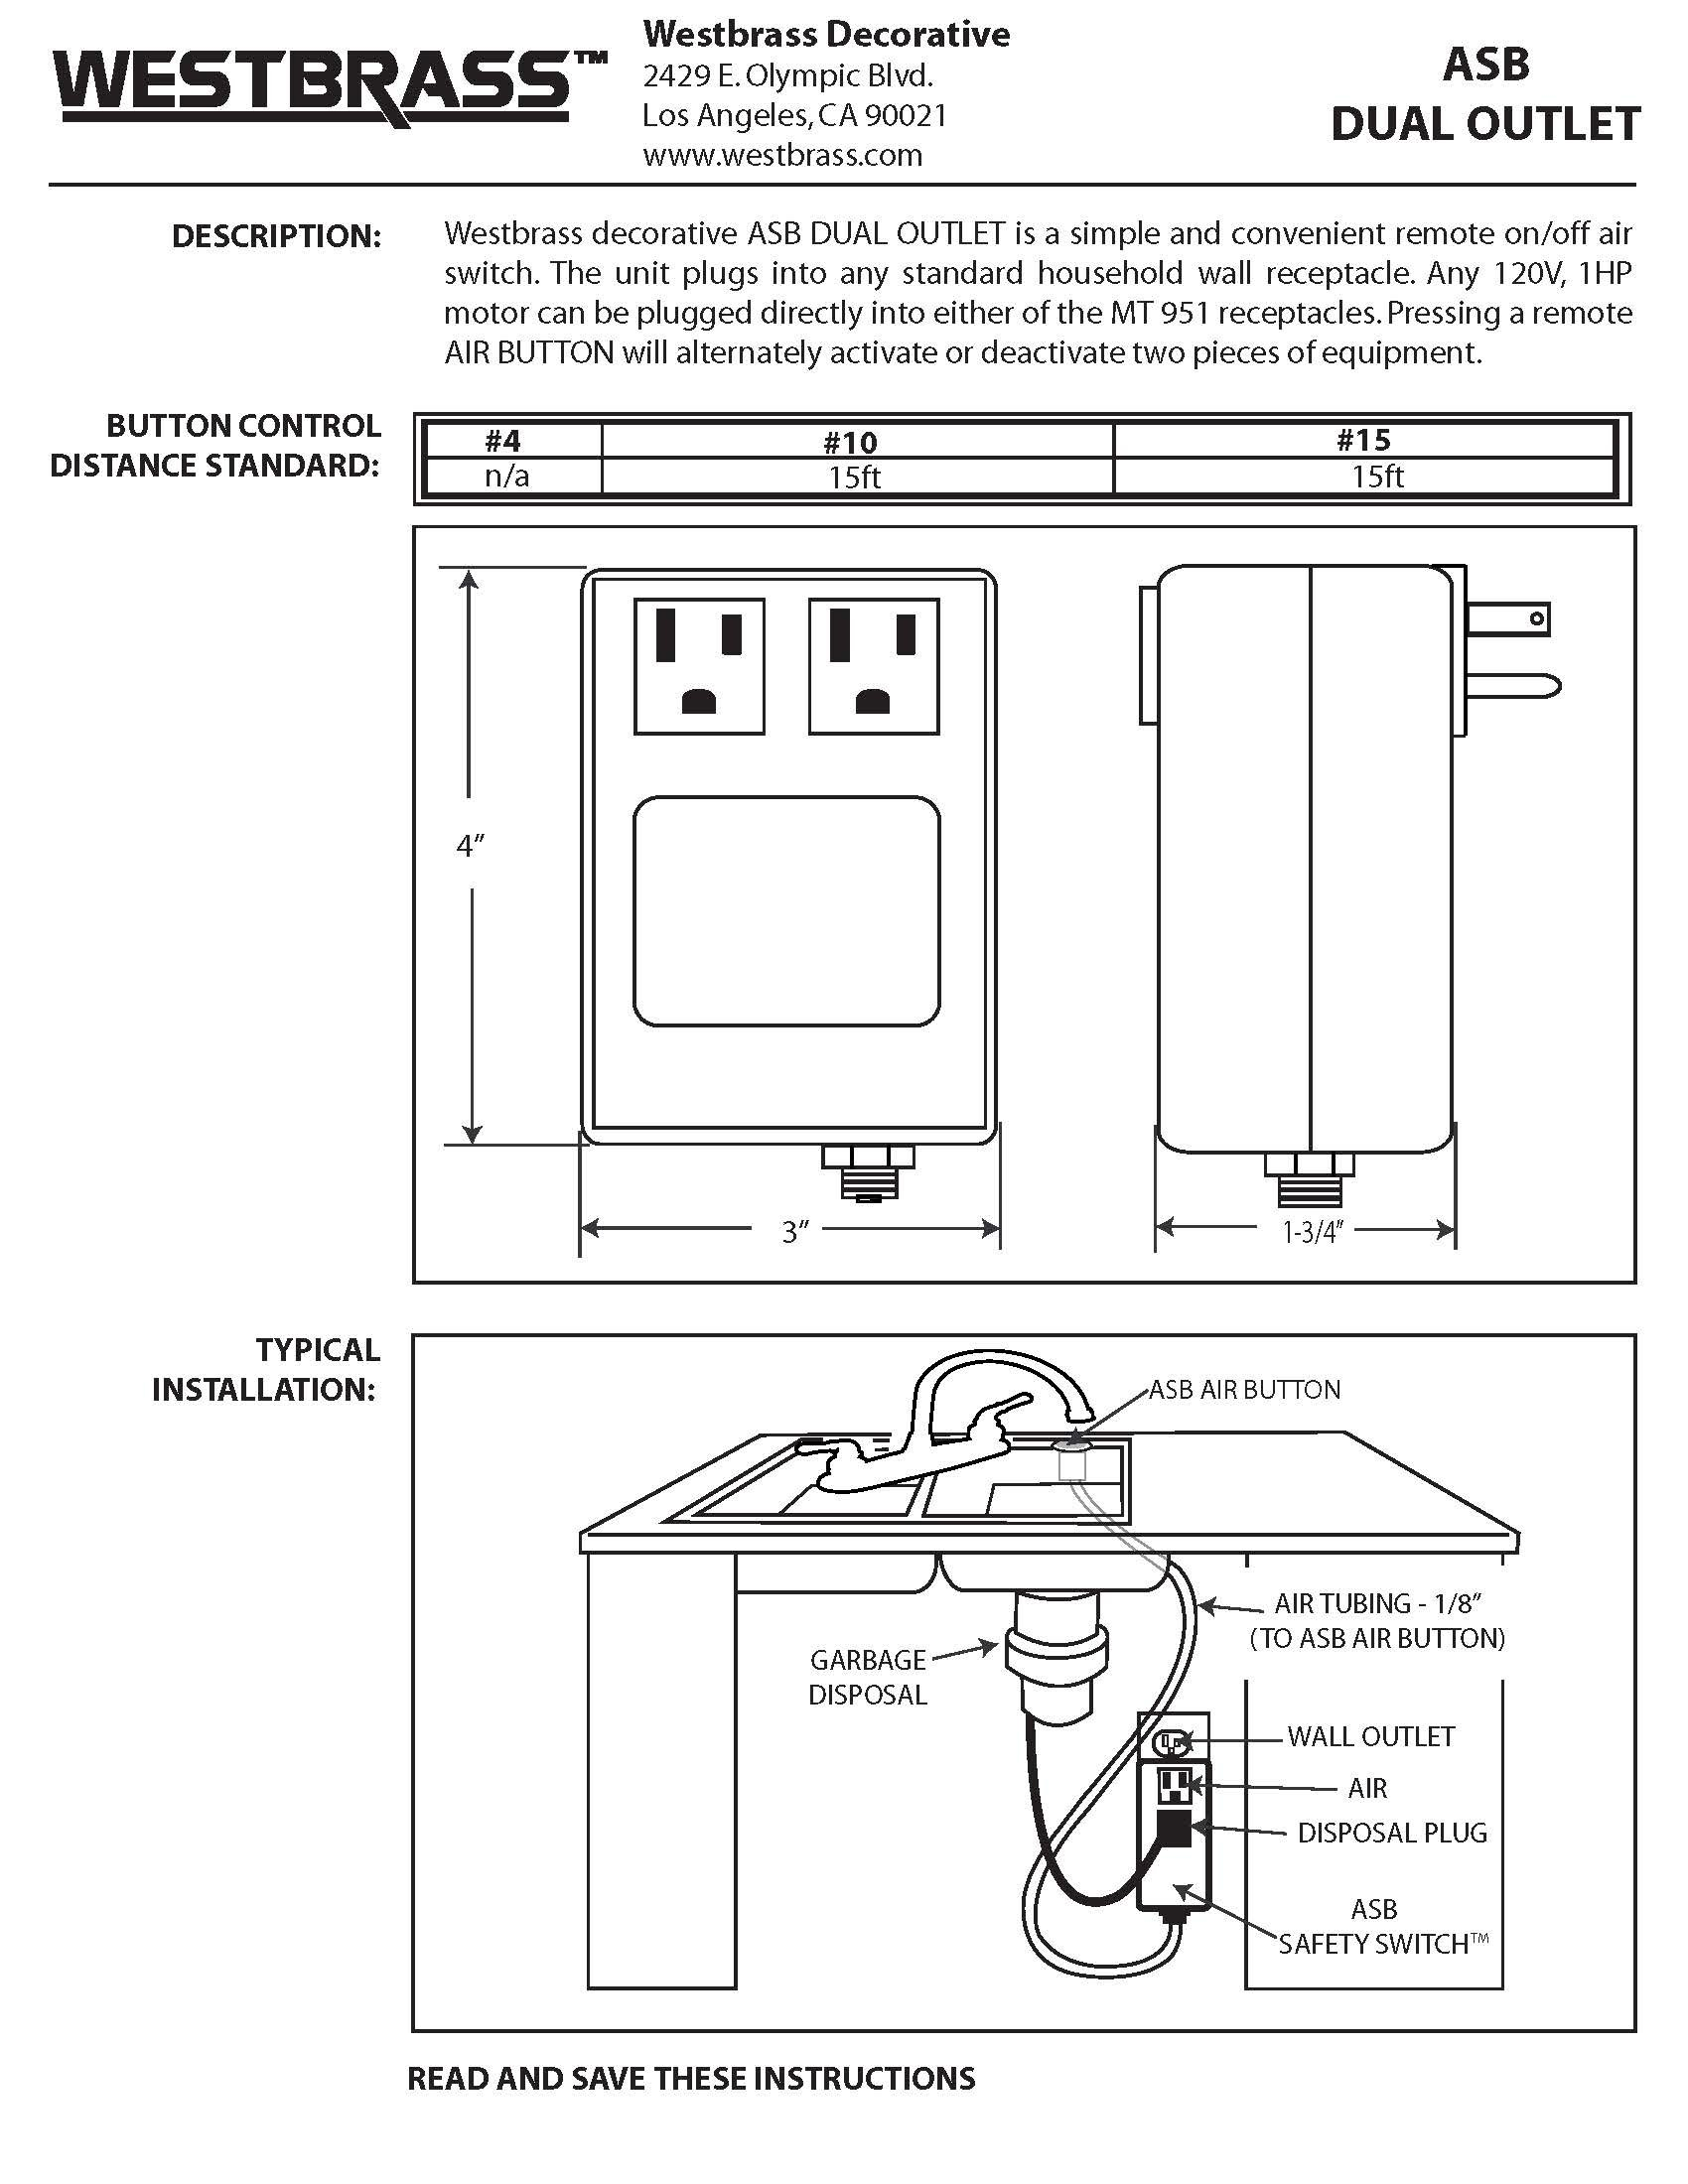 Westbrass RASB-2B3-05 Flush Button Air Switch & Dual Outlet Box, Polished Nickel by Westbrass (Image #4)